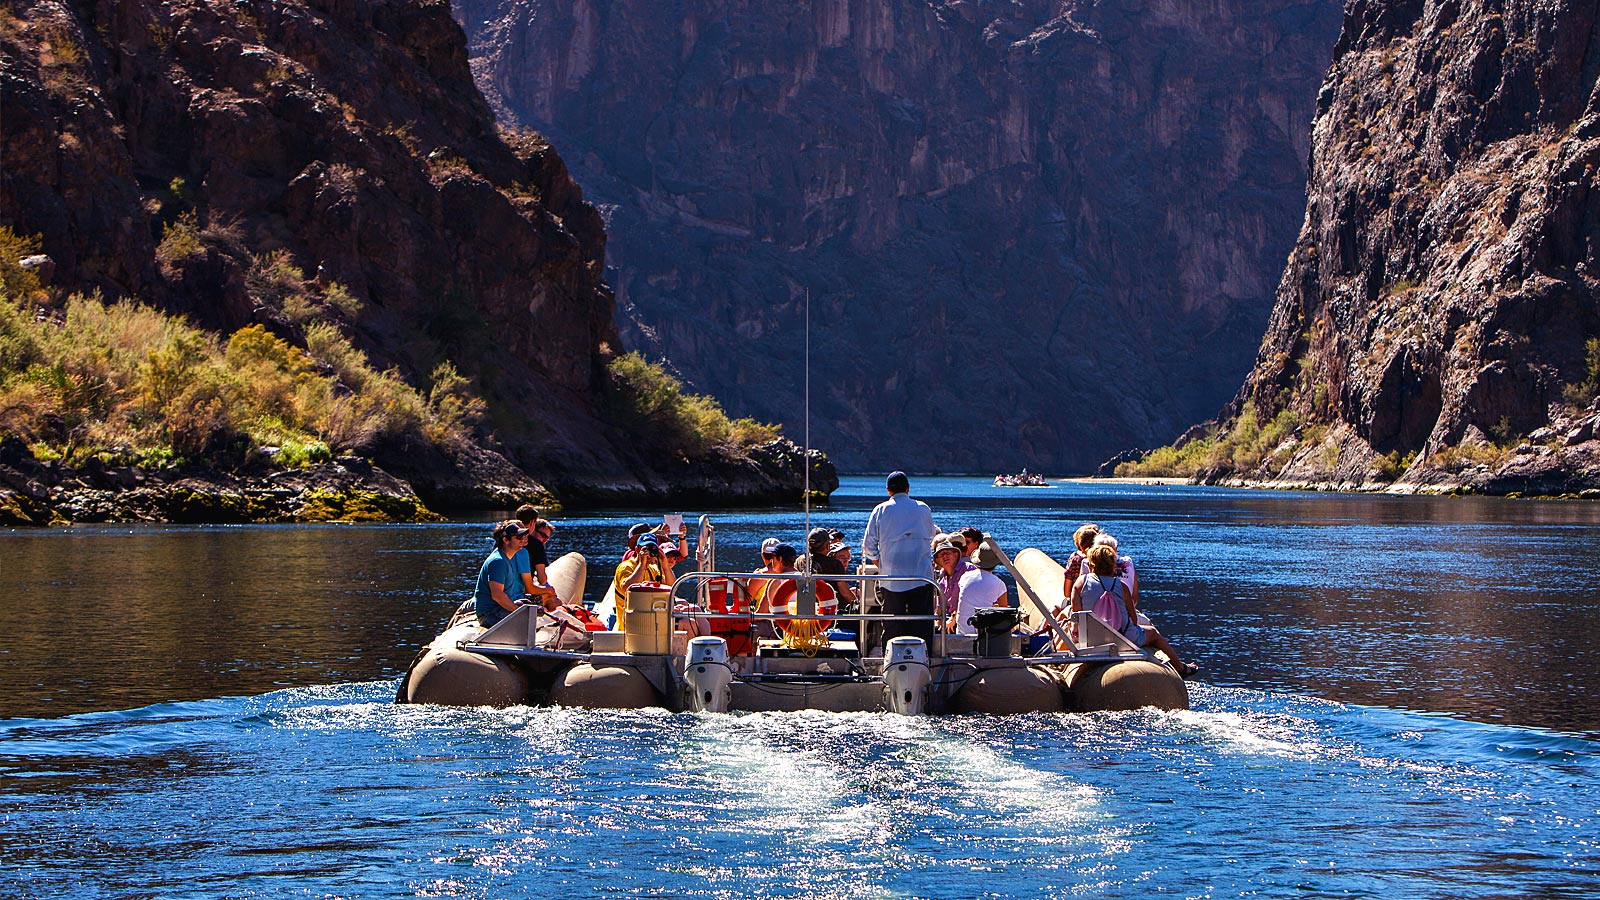 Grand Canyon Helicopter Flight and Black Canyon River Rafting Adventure Day Tour – $499